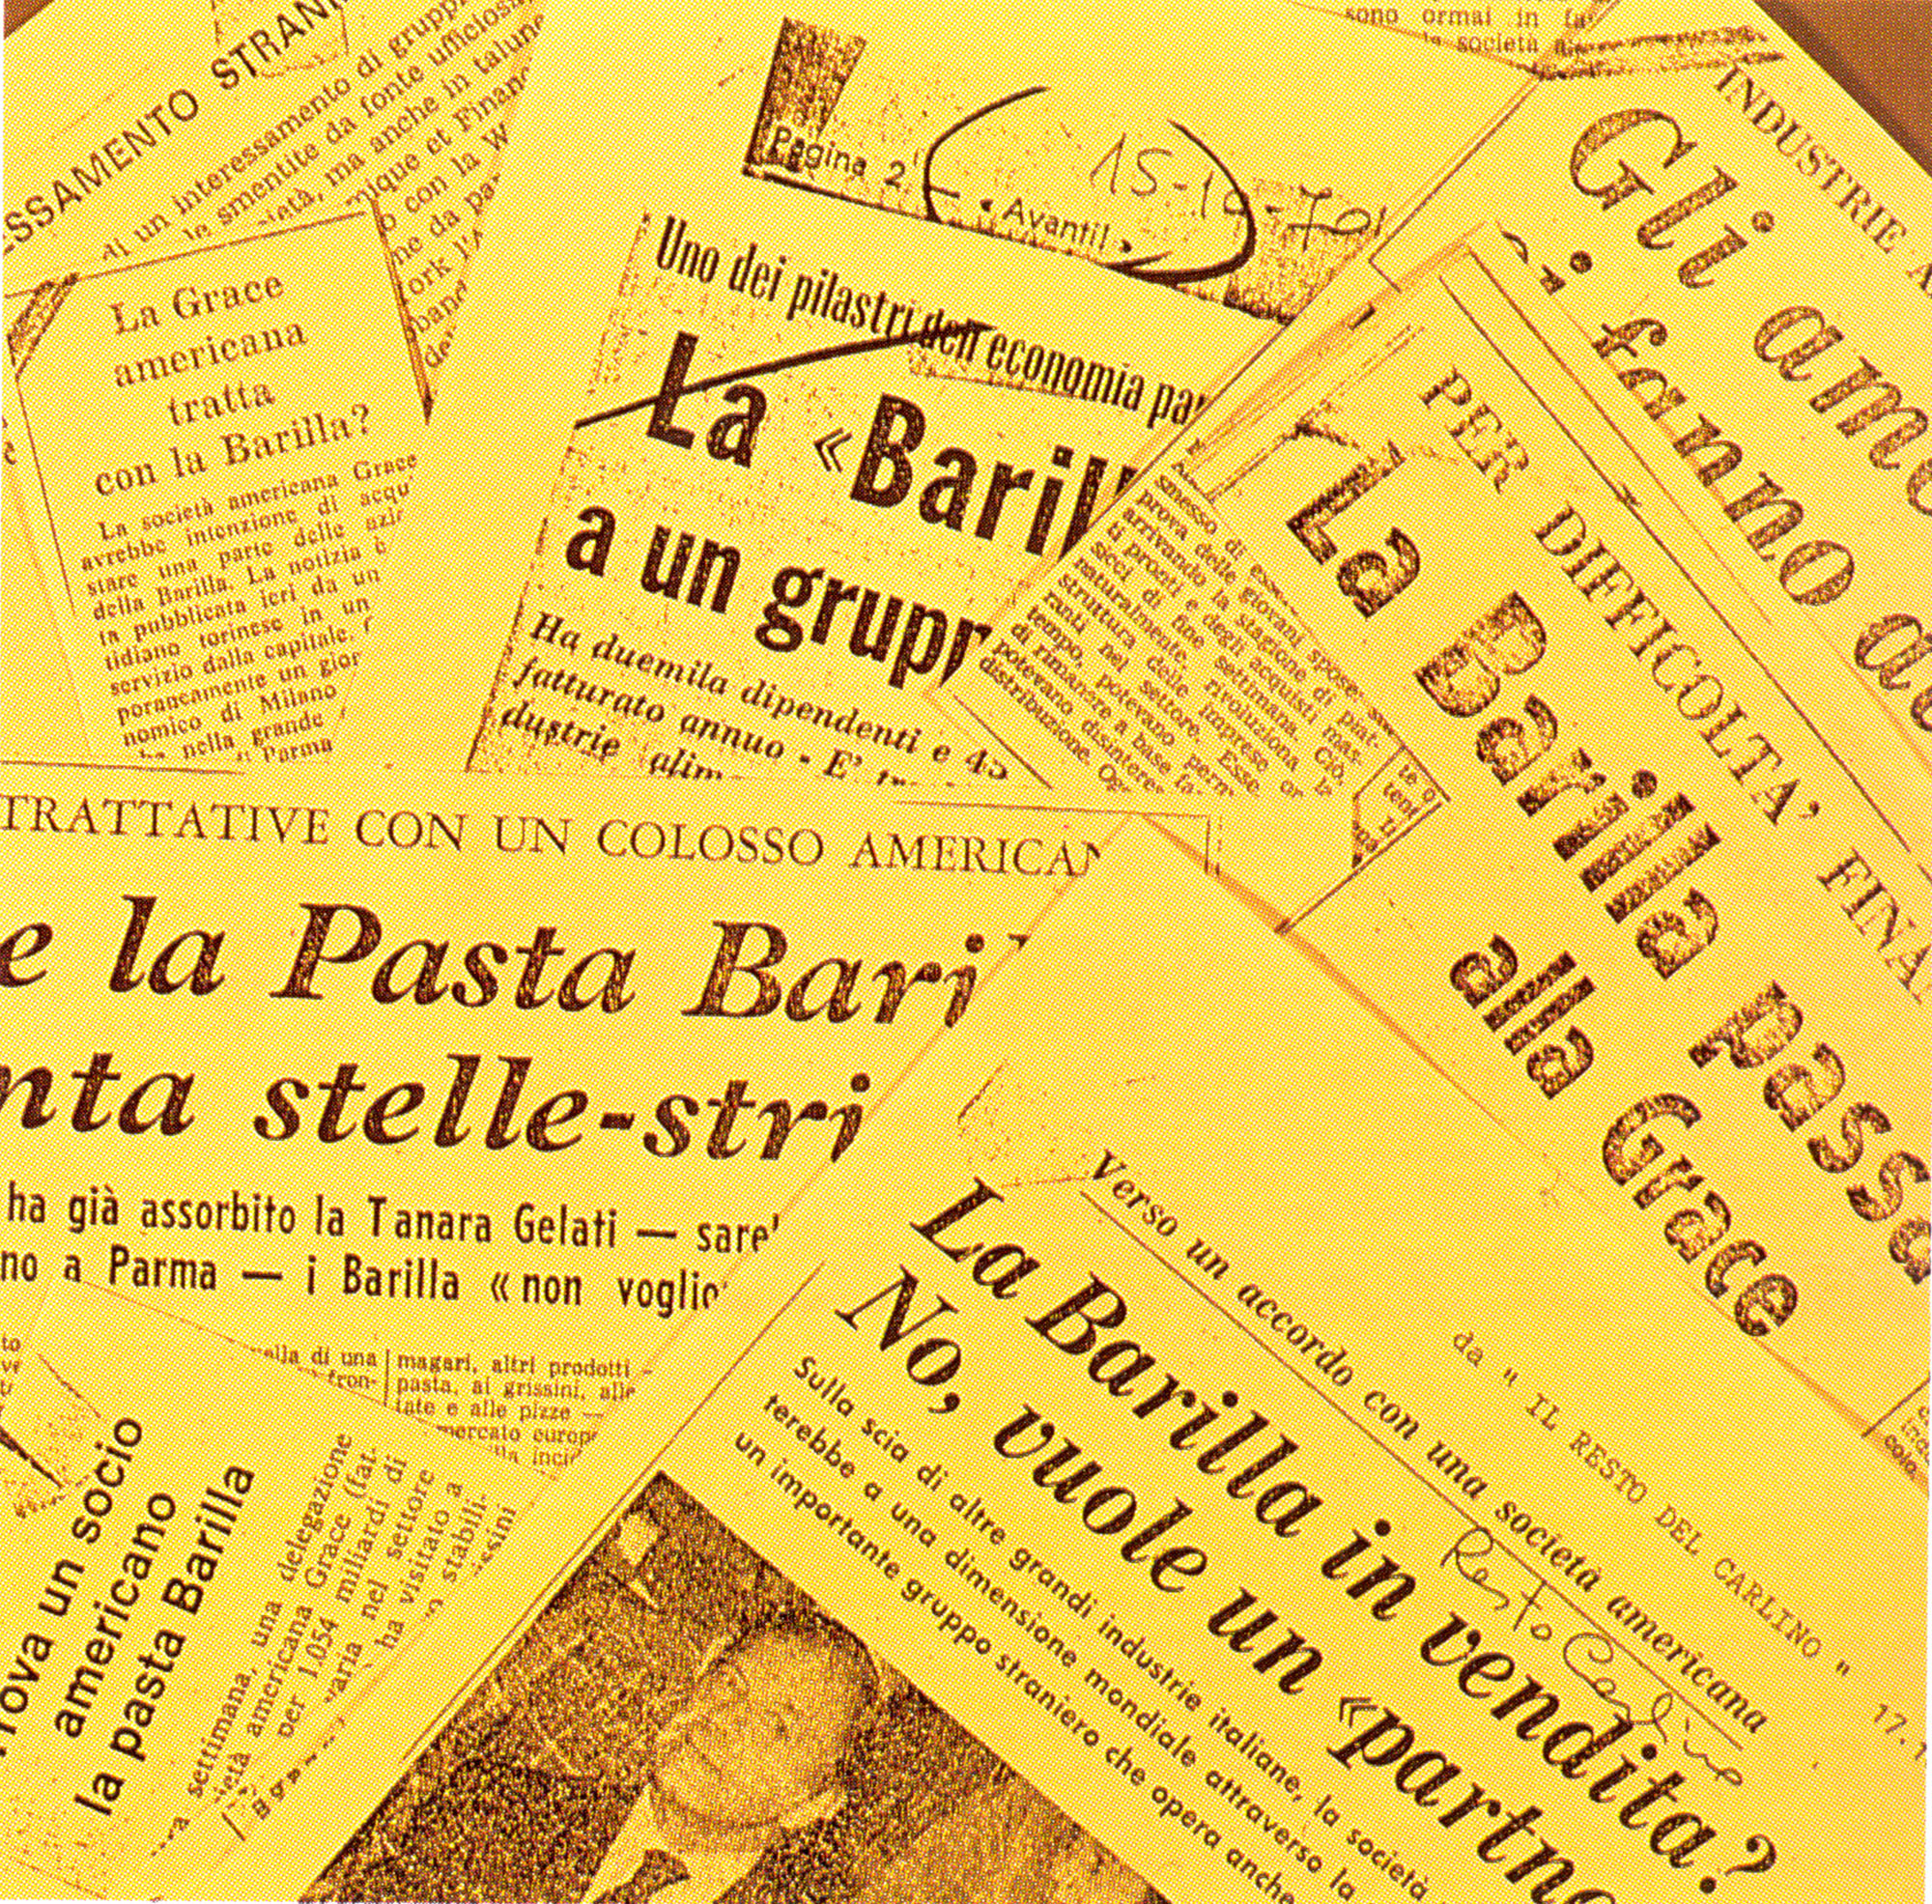 1971 - The news of the Barilla Pasta Plant's sale is on the National press